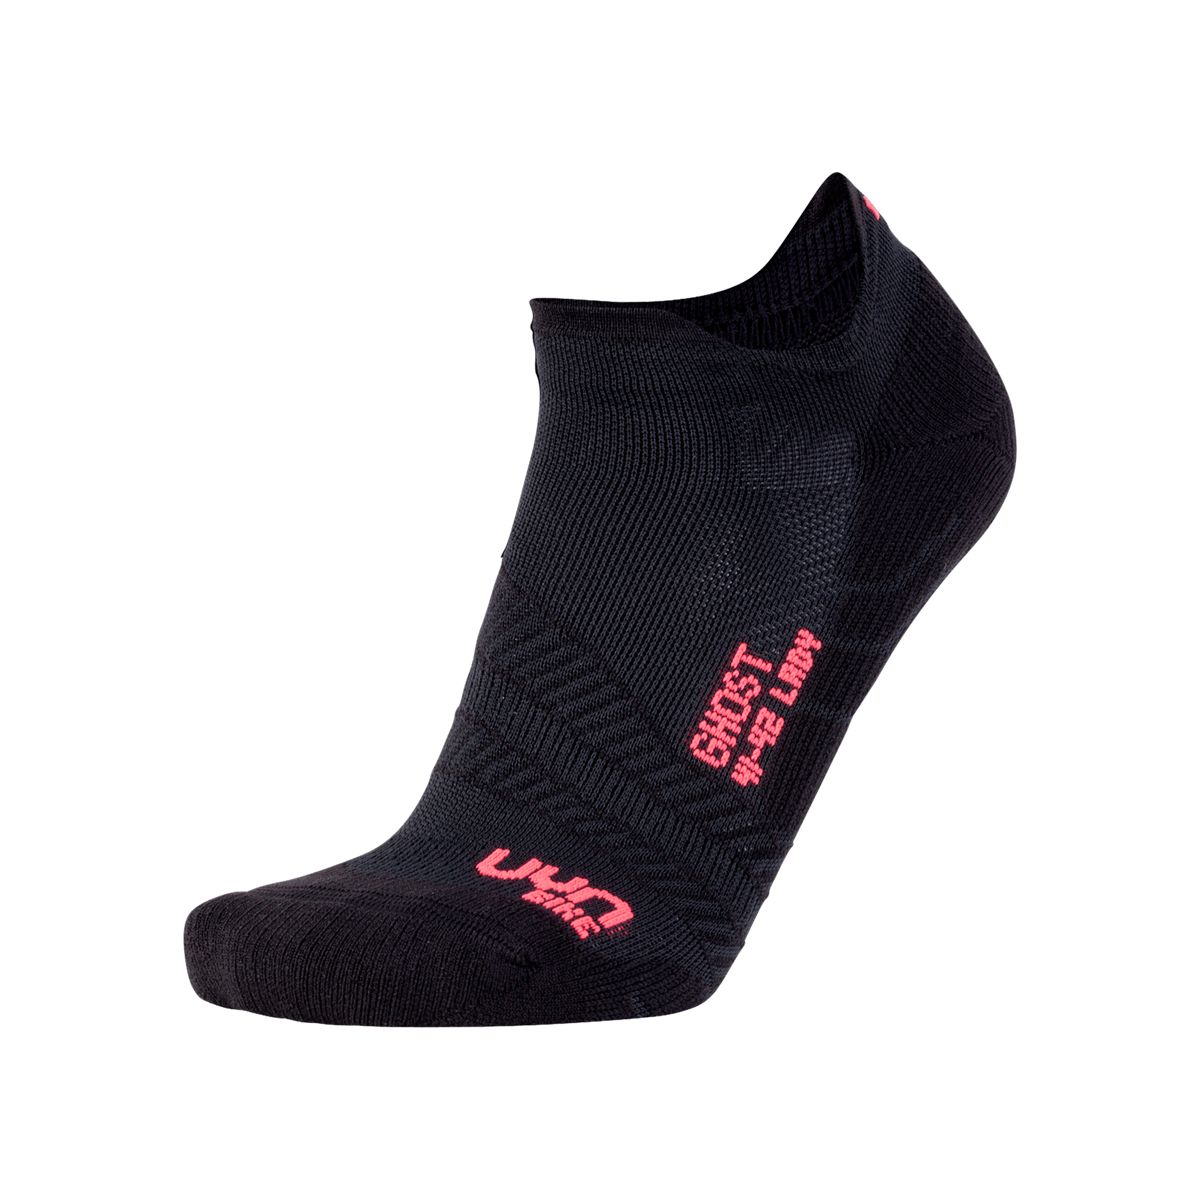 GHOST LADY'S CYCLING SOCKS